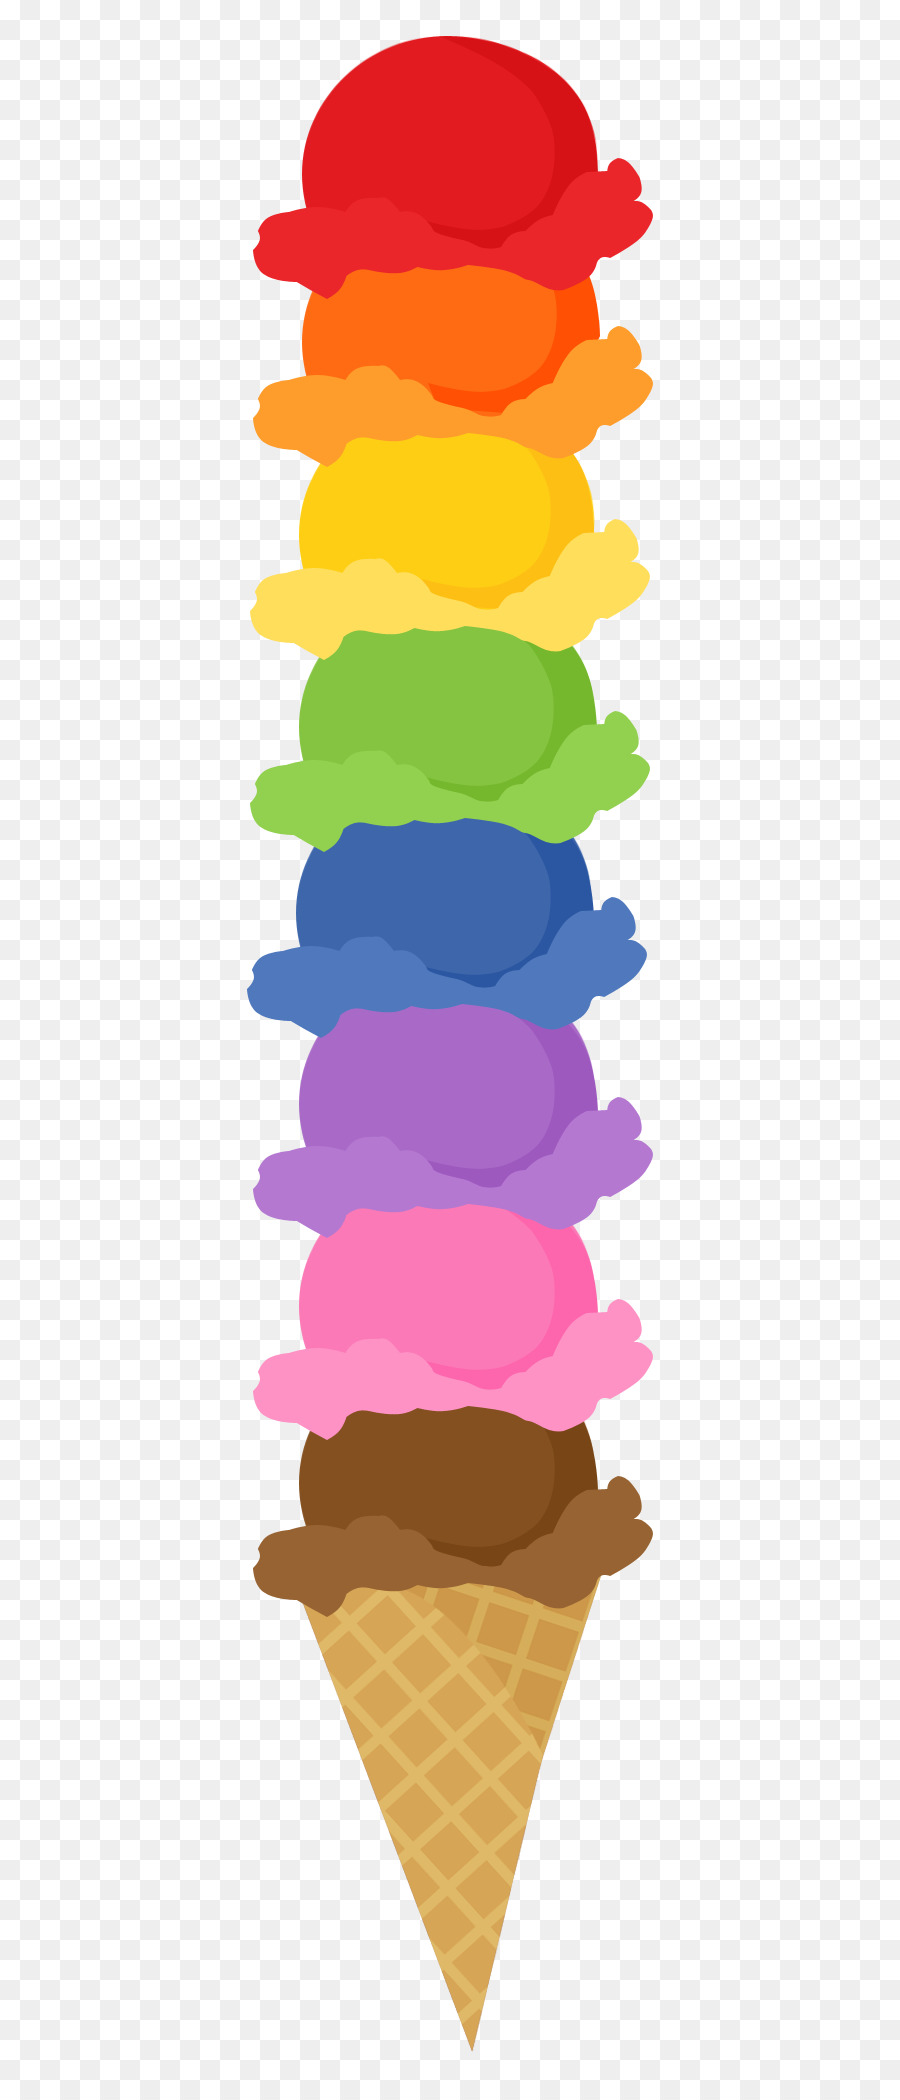 Ice cream rainbow. Cone background clipart transparent